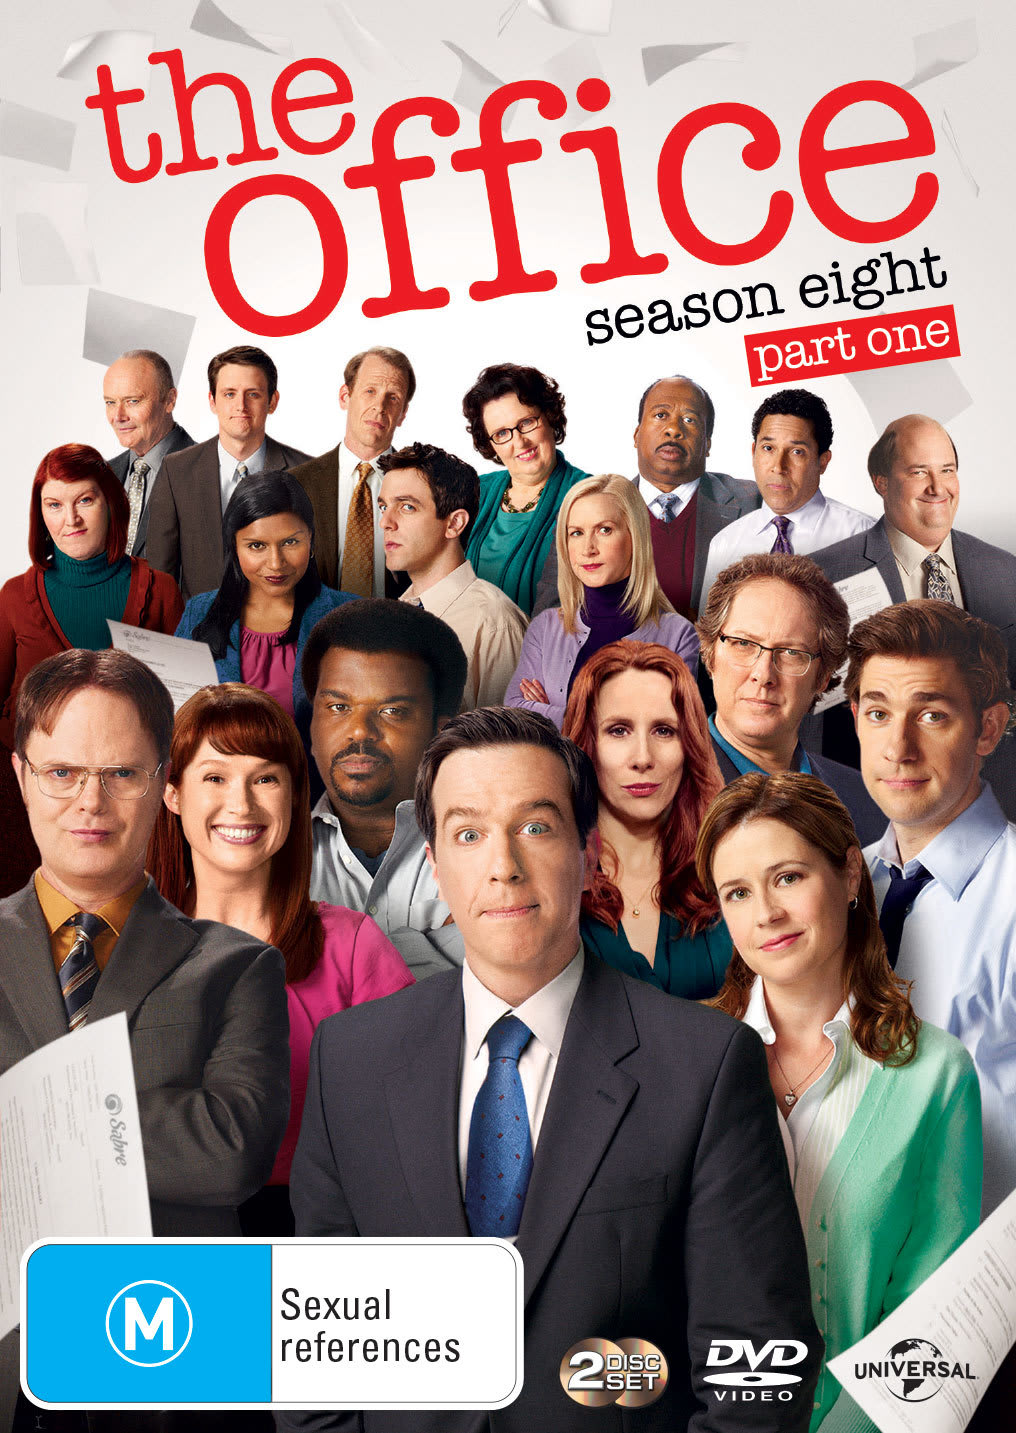 The Office - An American Workplace: Season Eight, Part One [DVD]